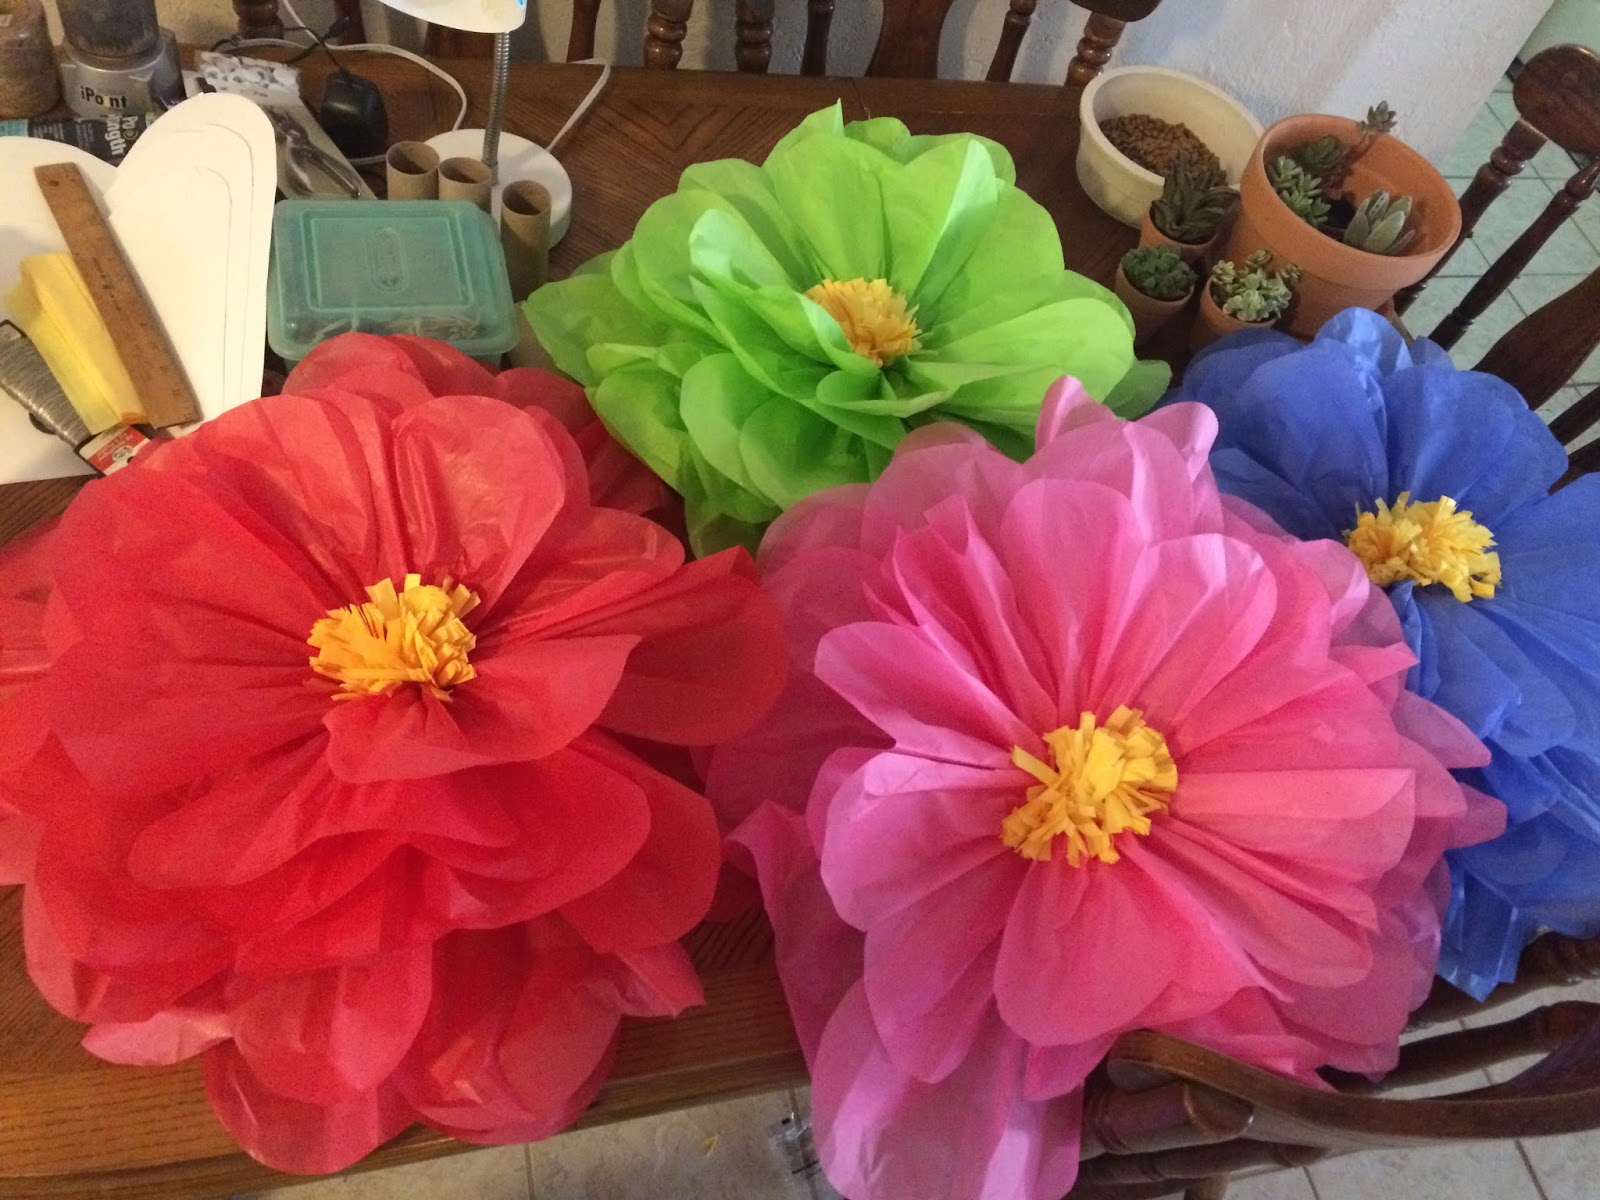 Mom taxi julie giant hibiscus tissue paper flowers i went back later and made 4 more smaller ones out of the leftover tissue paper pieces i ended up being in charge of decorating the big covered area where izmirmasajfo